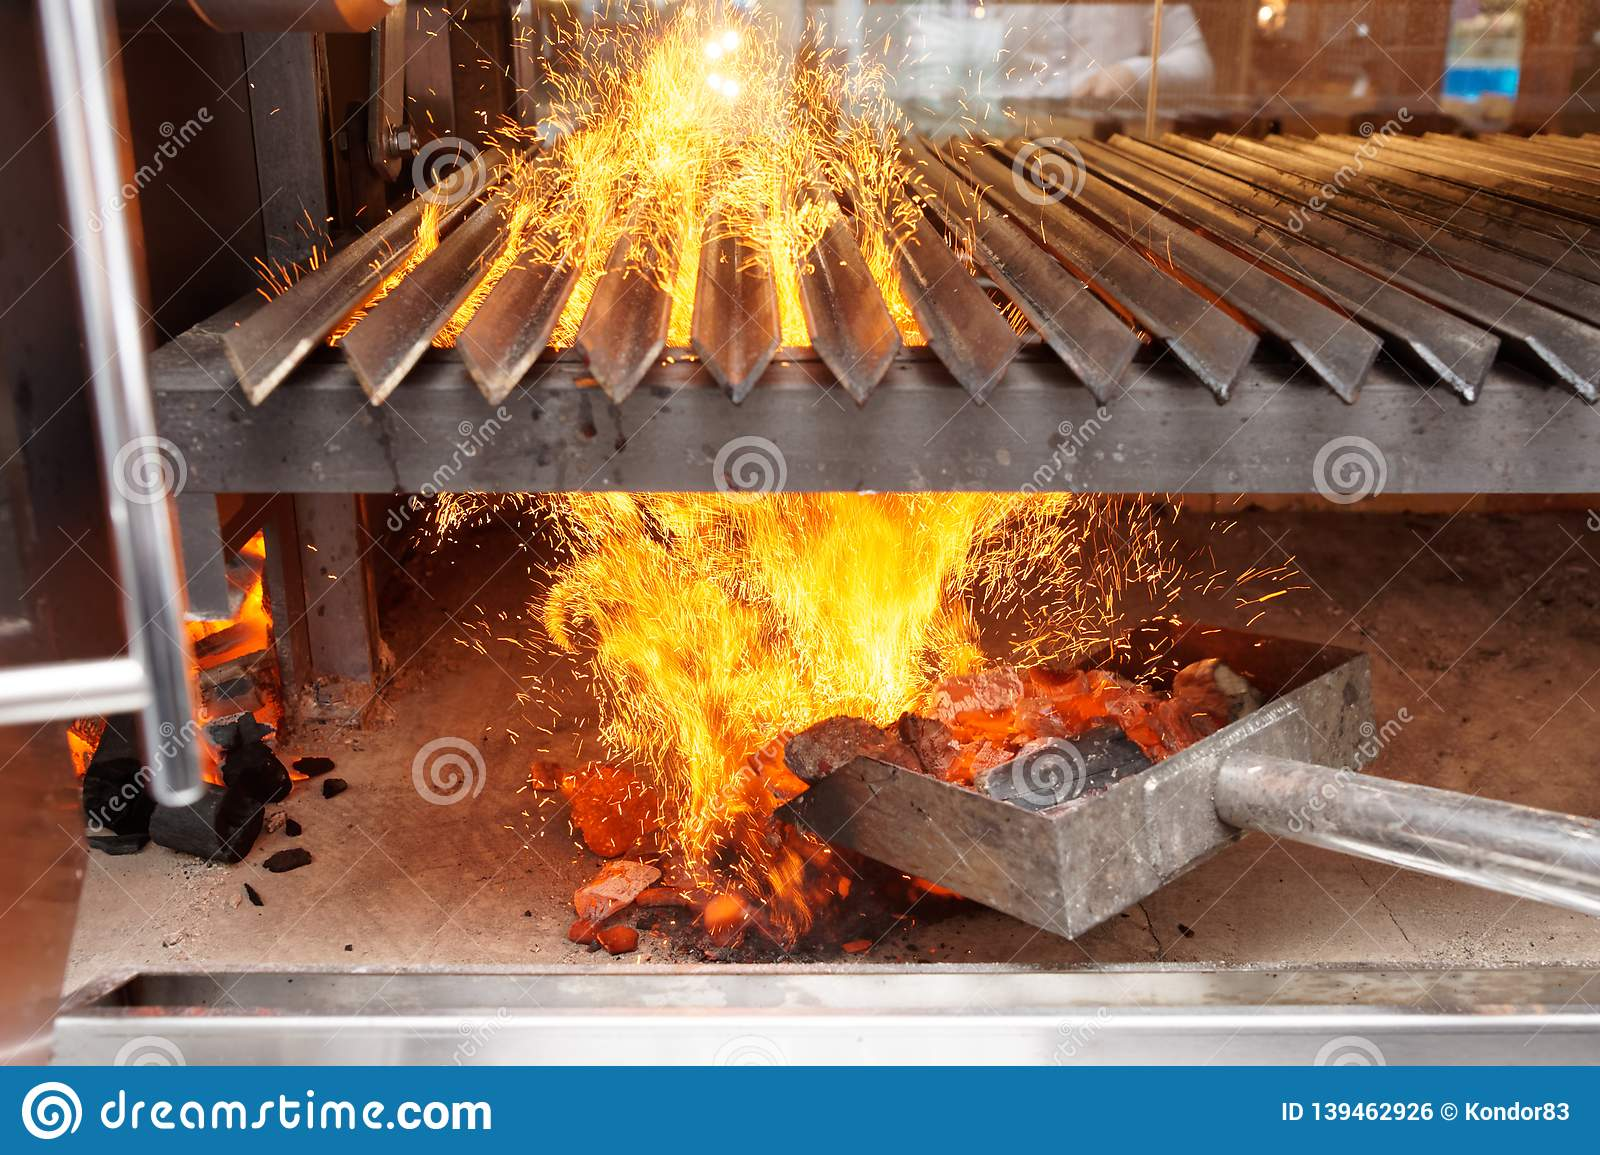 Chef Is Starting Up Charcoal Grill Stock Photo Image Of Barbecue Ignition 139462926